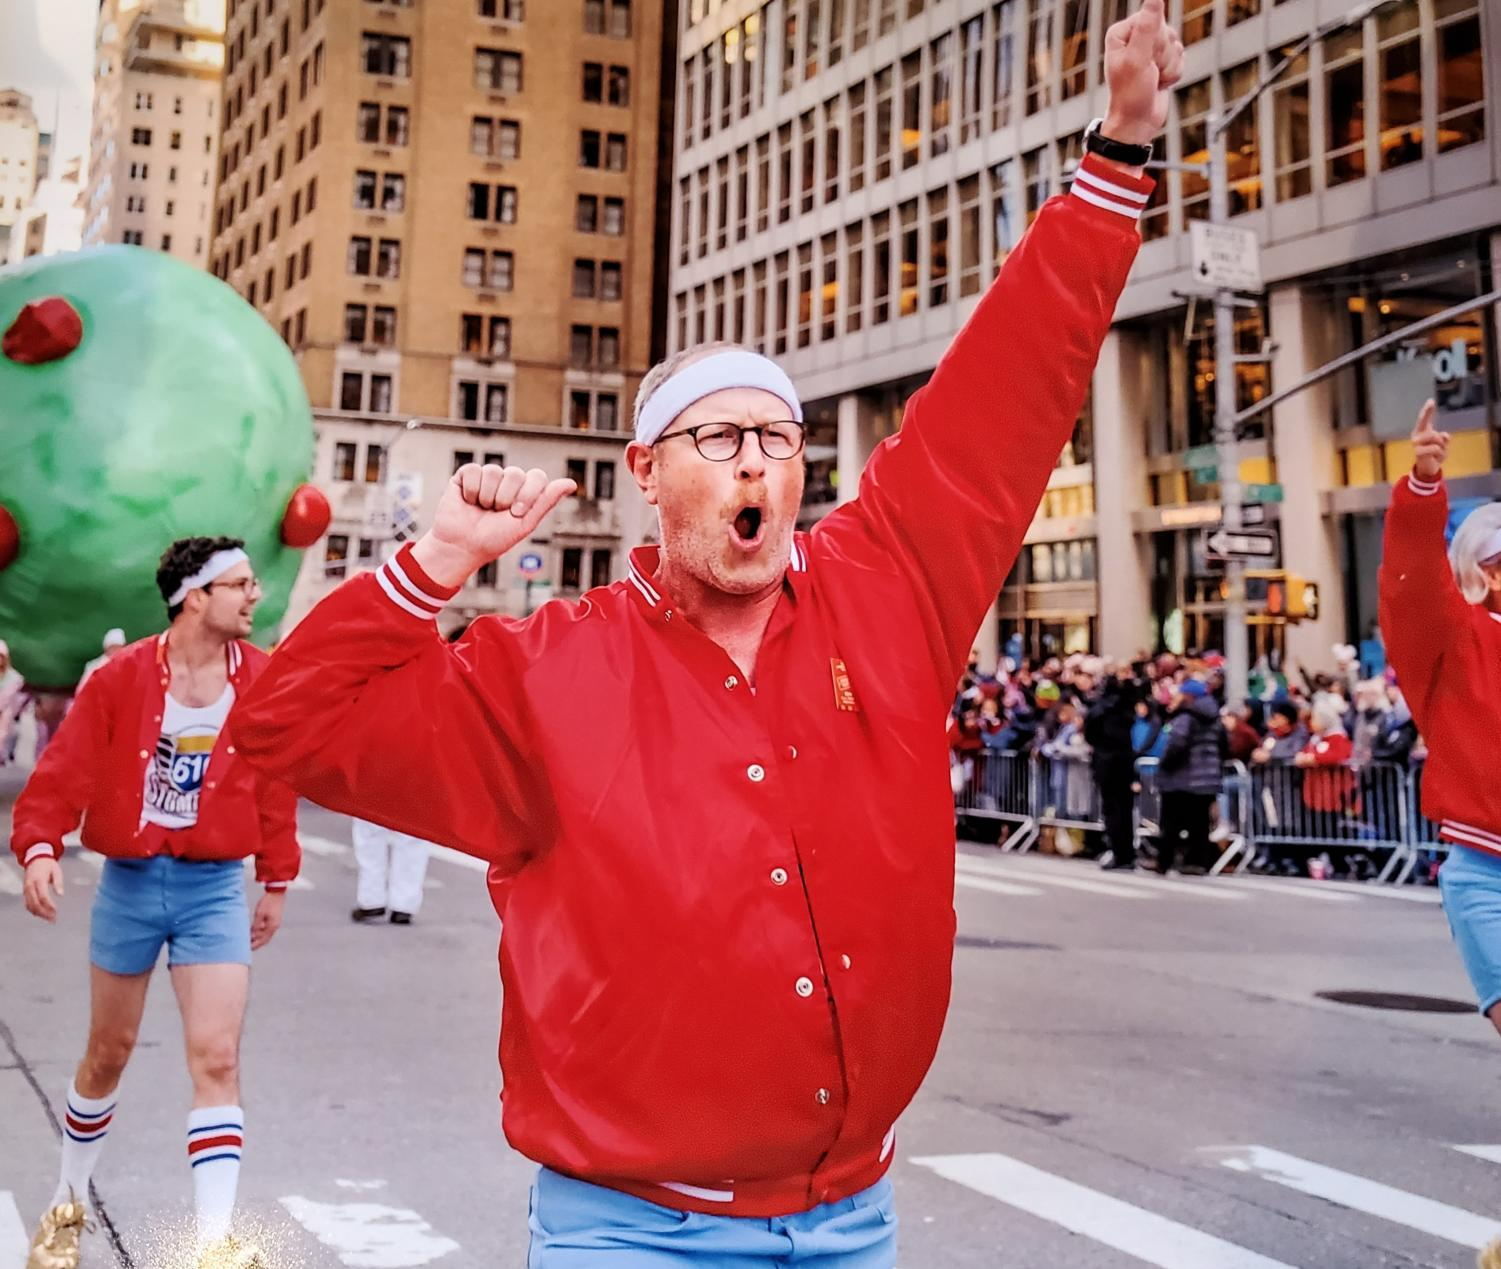 Kern Maass, dean of the College of Music and Media, performs with the 610 Stompers during the Macy's Thanksgiving Day Parade in New York City. Maass is a member of the Year 11 rookie class of the Krewe.